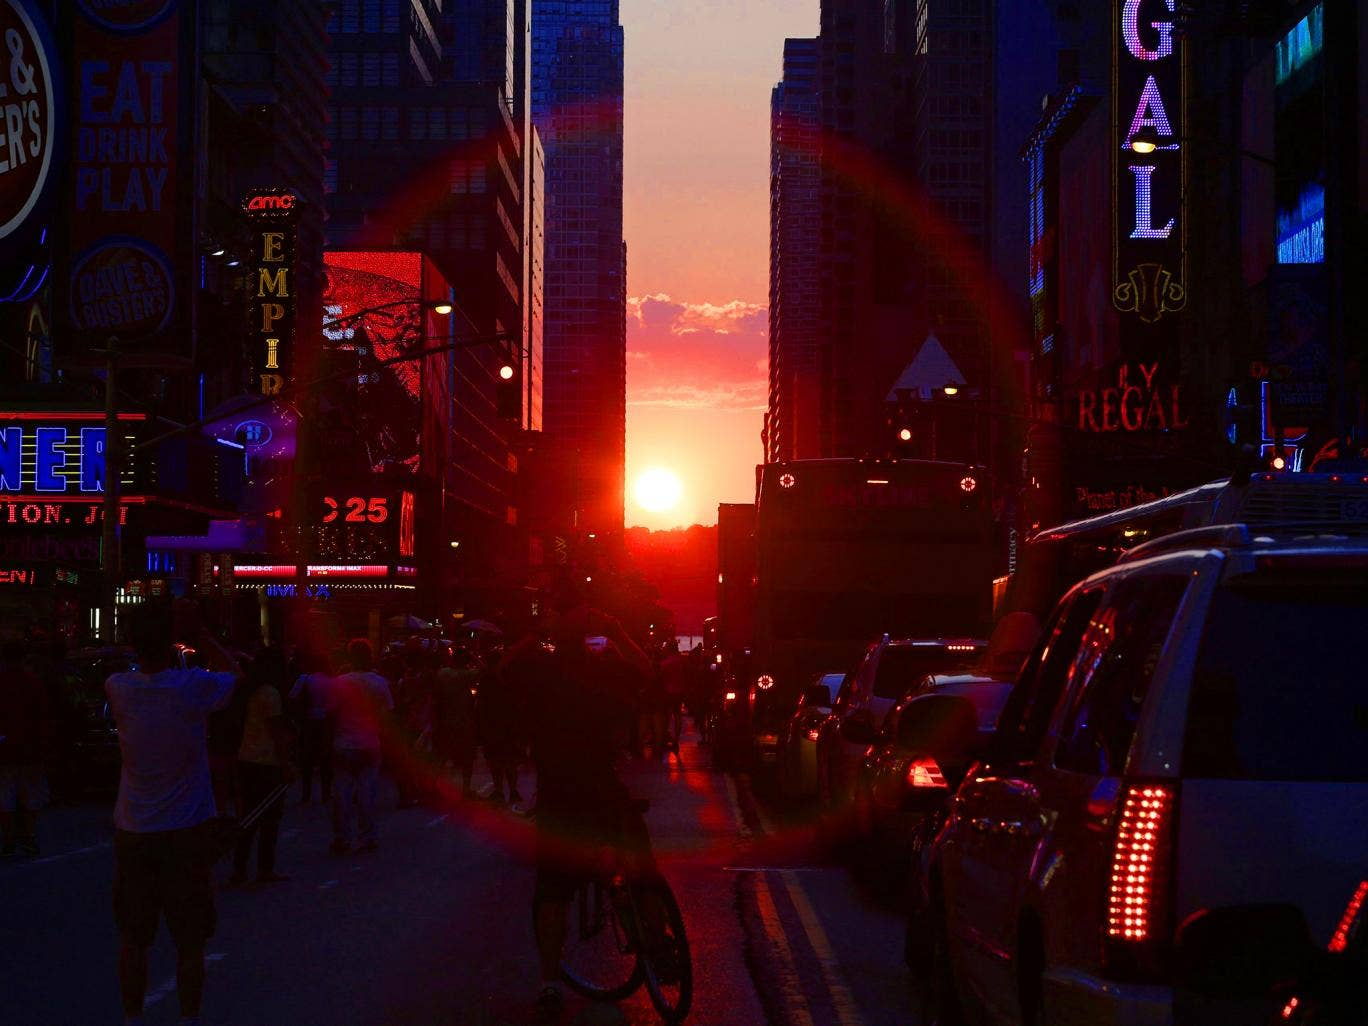 The sun is seen setting behind buildings in Times Square during the Manhattanhenge